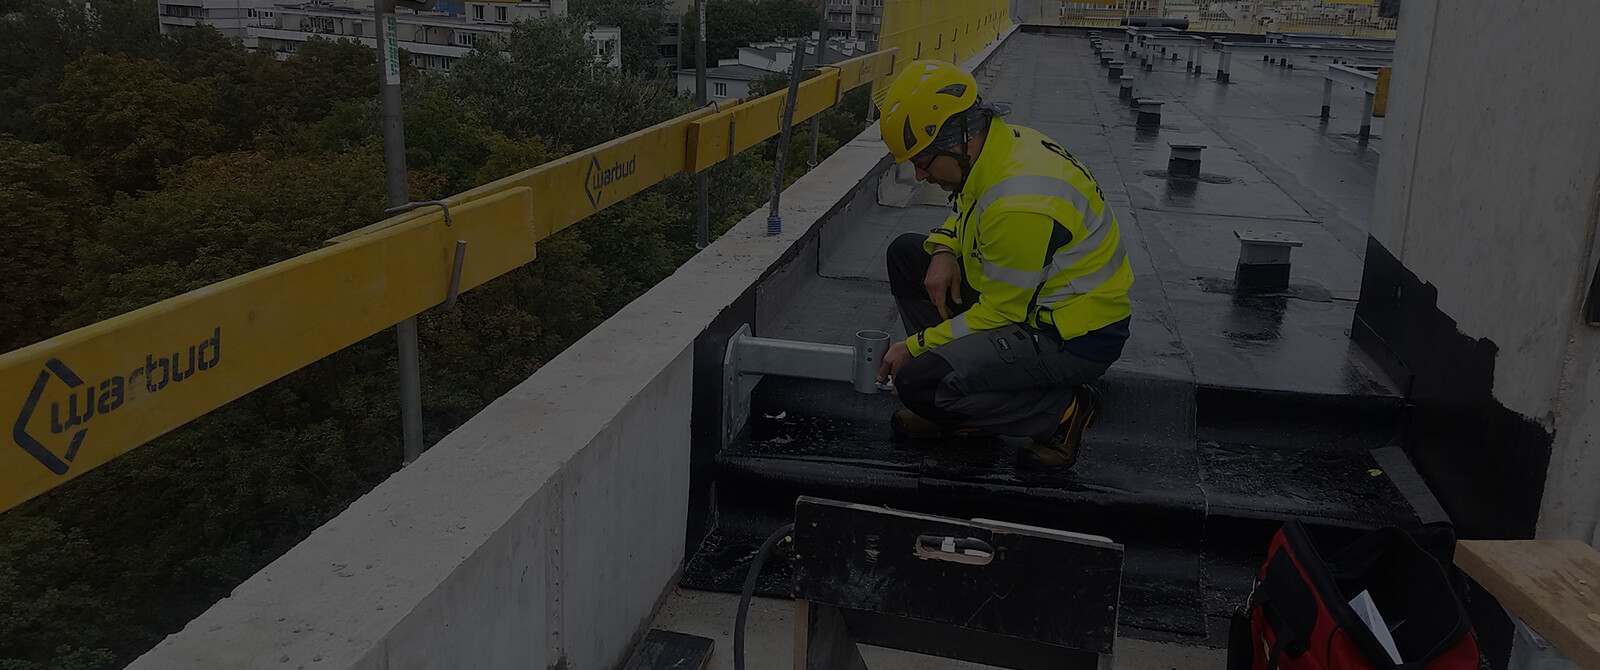 Accent- installation of fall protection system